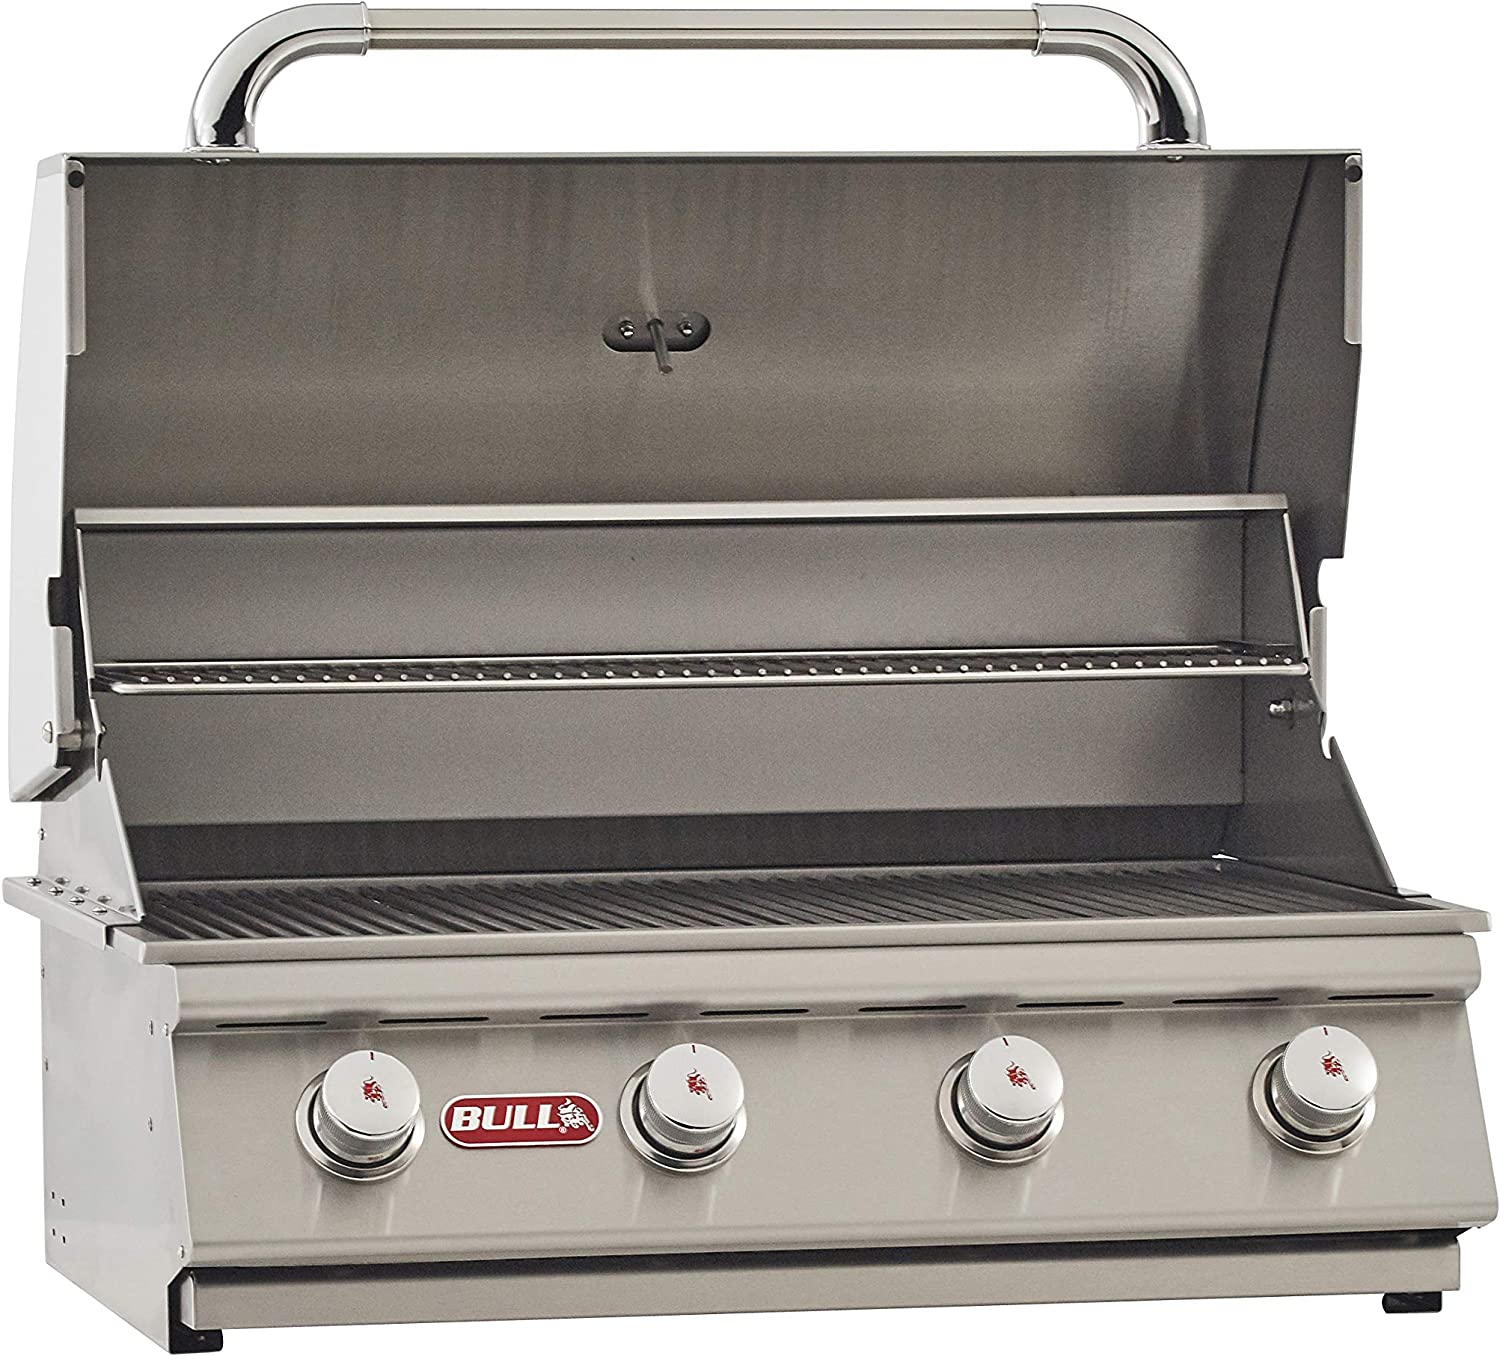 Bull Outdoor Products Outlaw Tête de barbecue Gaz naturel